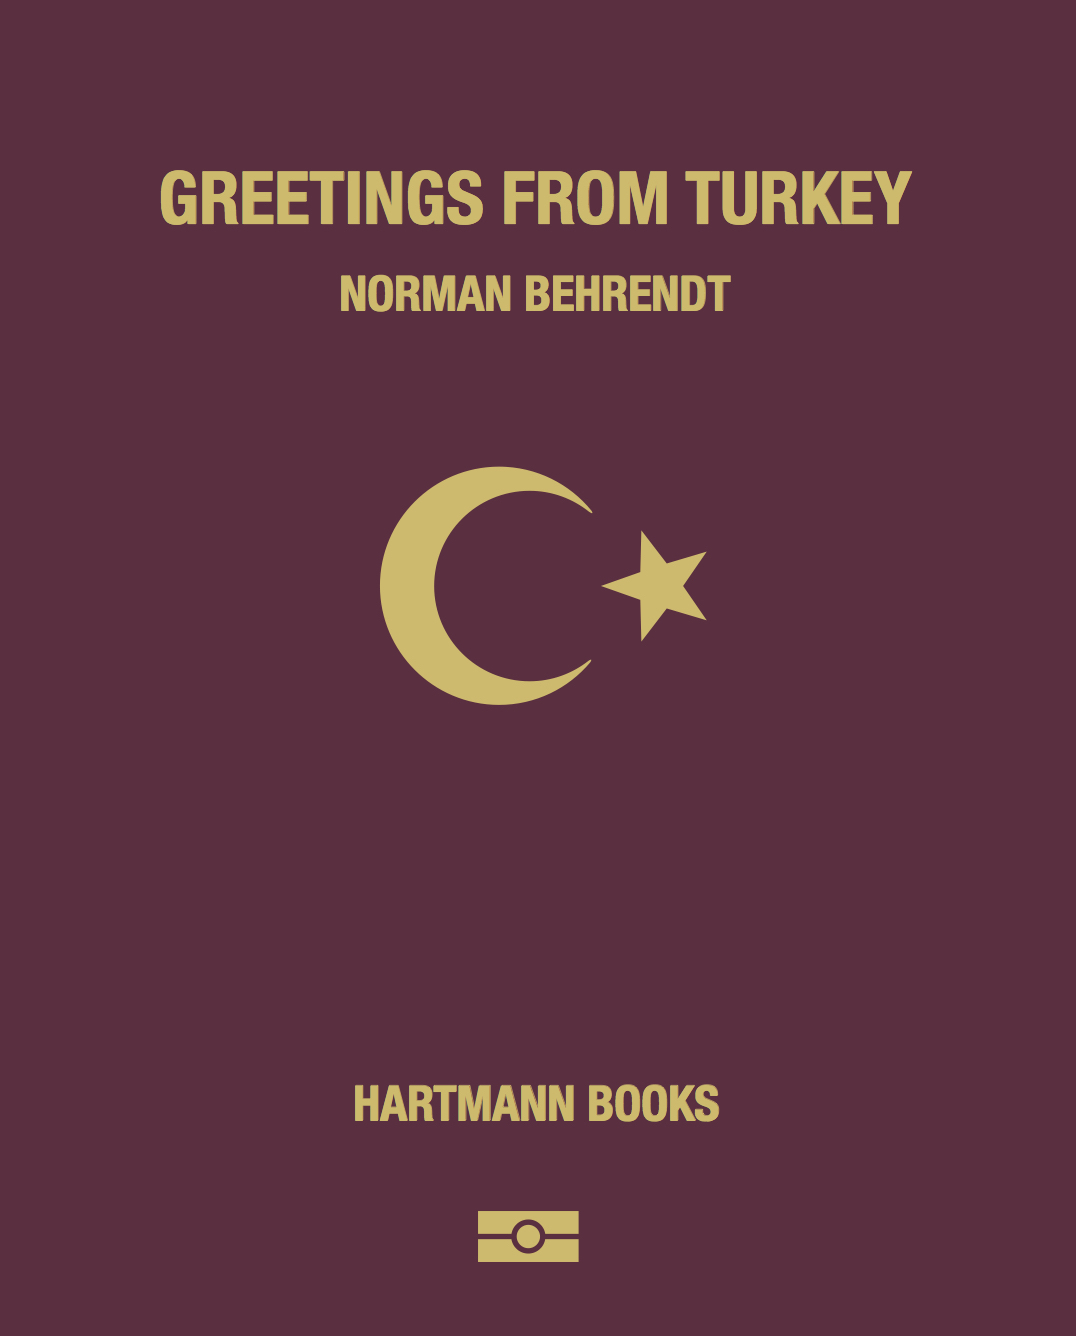 Greetings from Turkey  11 x 13.6 cm 2 different covers 17 postcards on grooved printed sheets English July 2017  Hartmann Projects  ISBN 978-3-96070-013-5